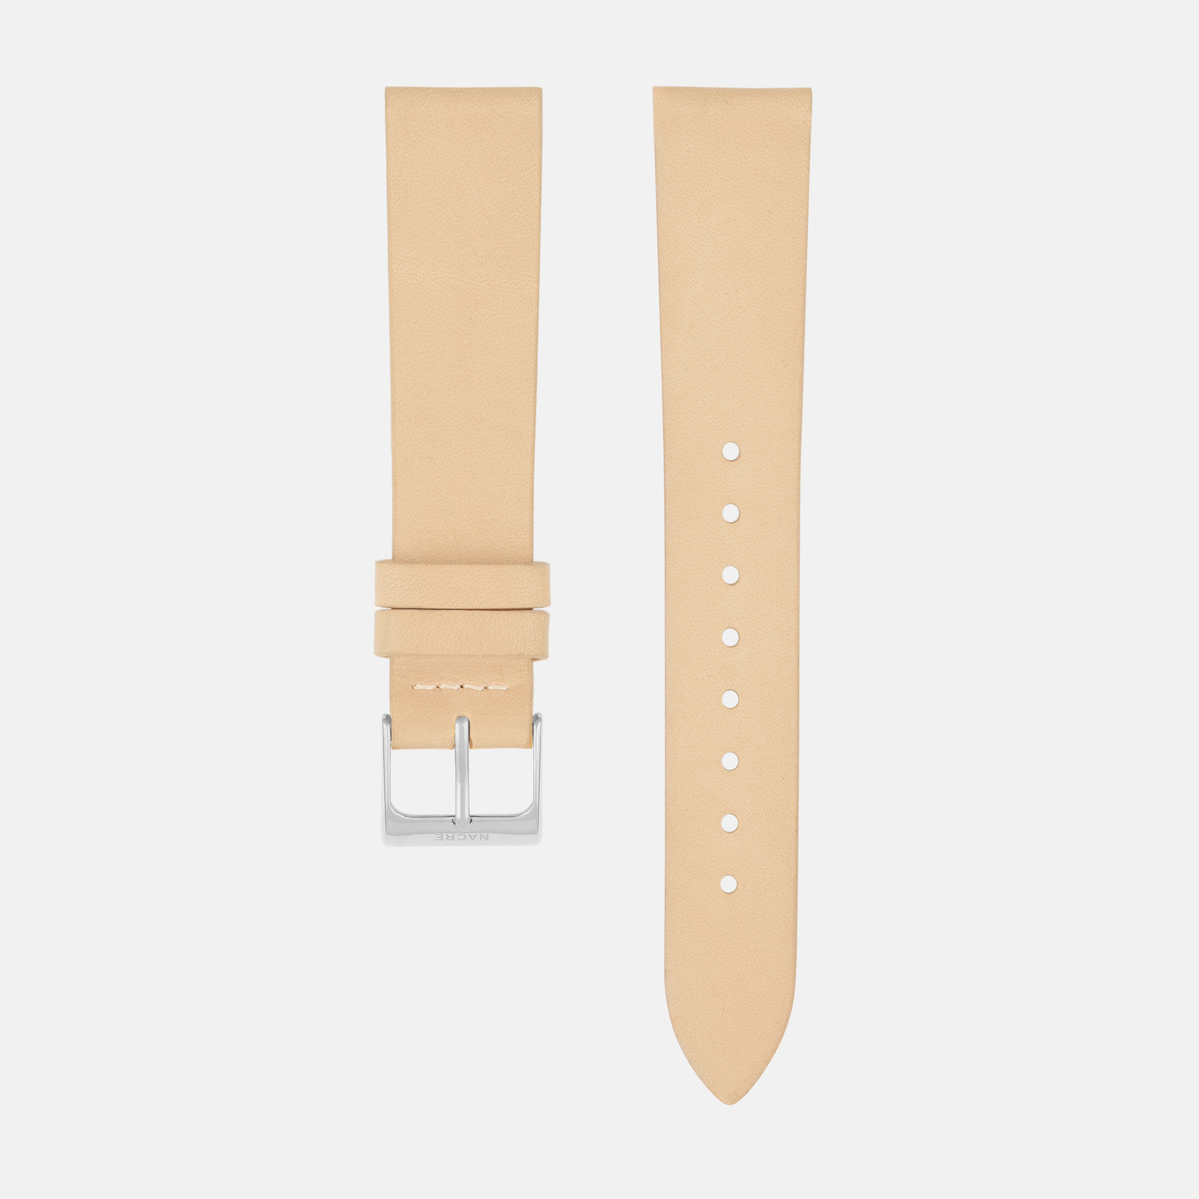 Strap - Italian Leather - Natural Leather - Stainless Steel